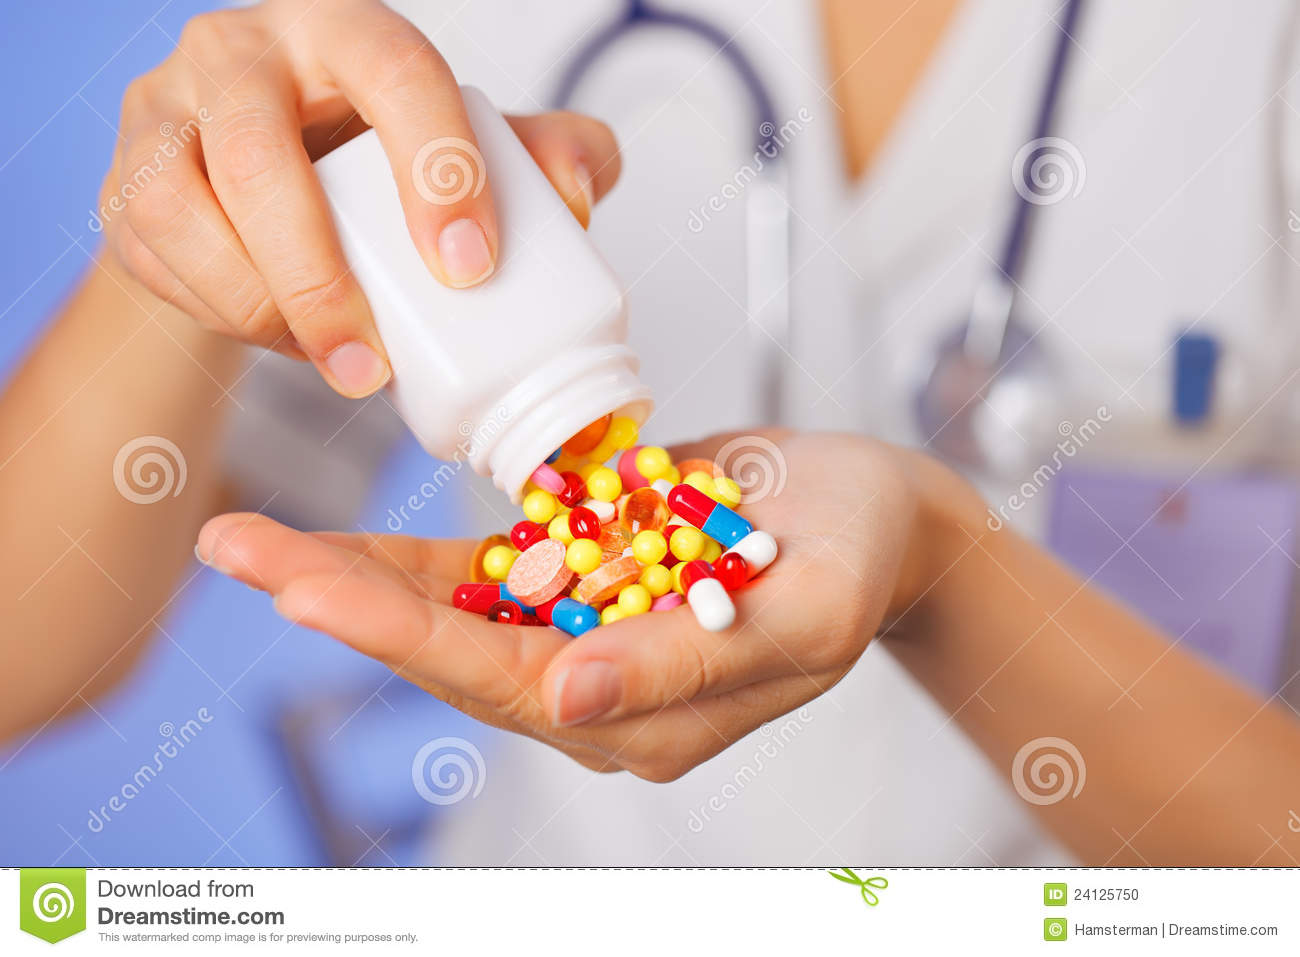 how to ask for the pill at the doctors